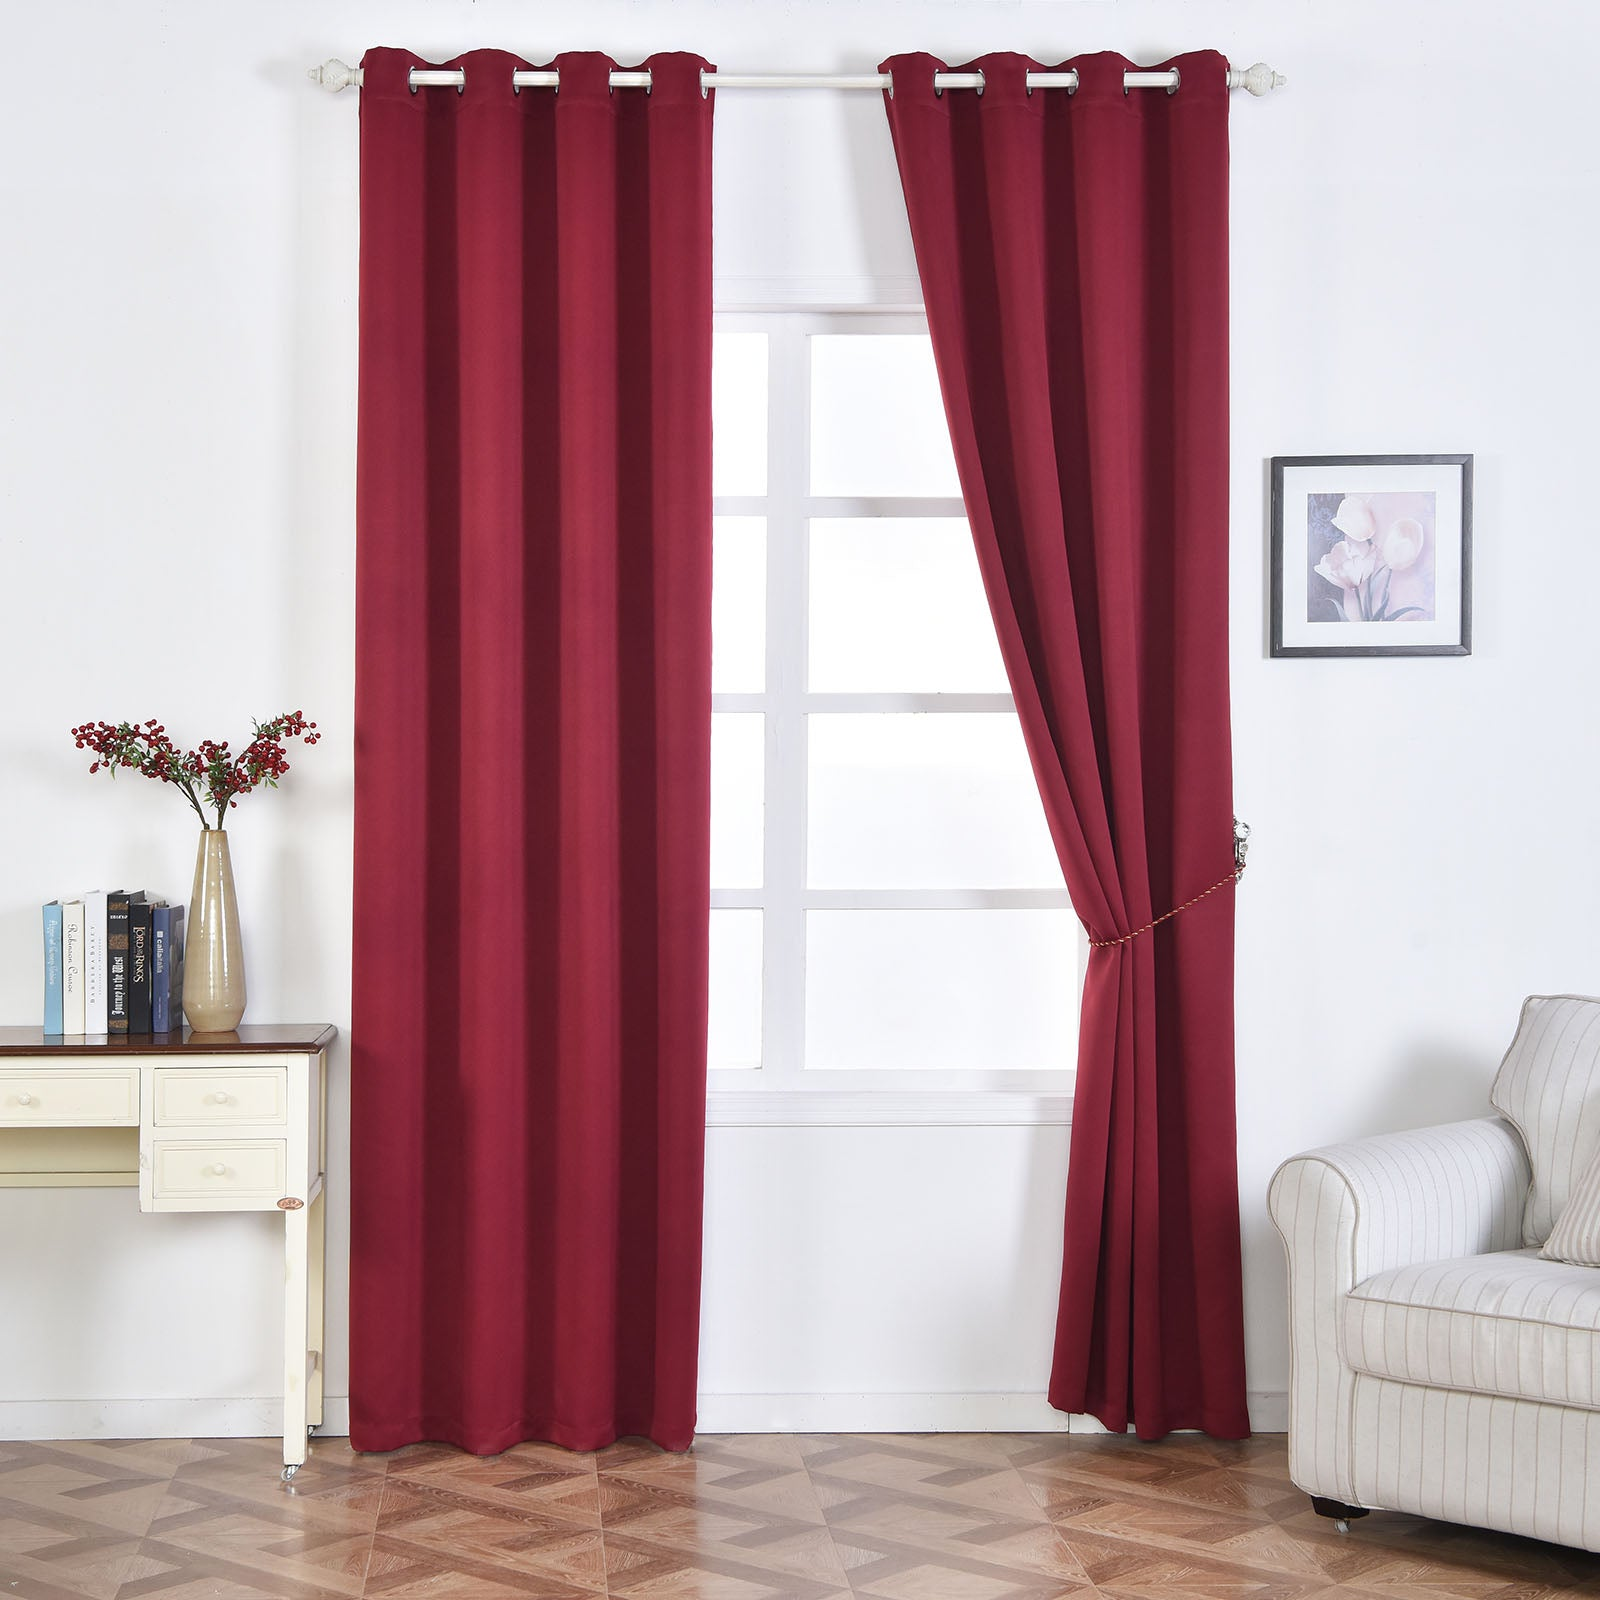 2 Pack Burgundy Thermal Insulated Blackout Room Darkening